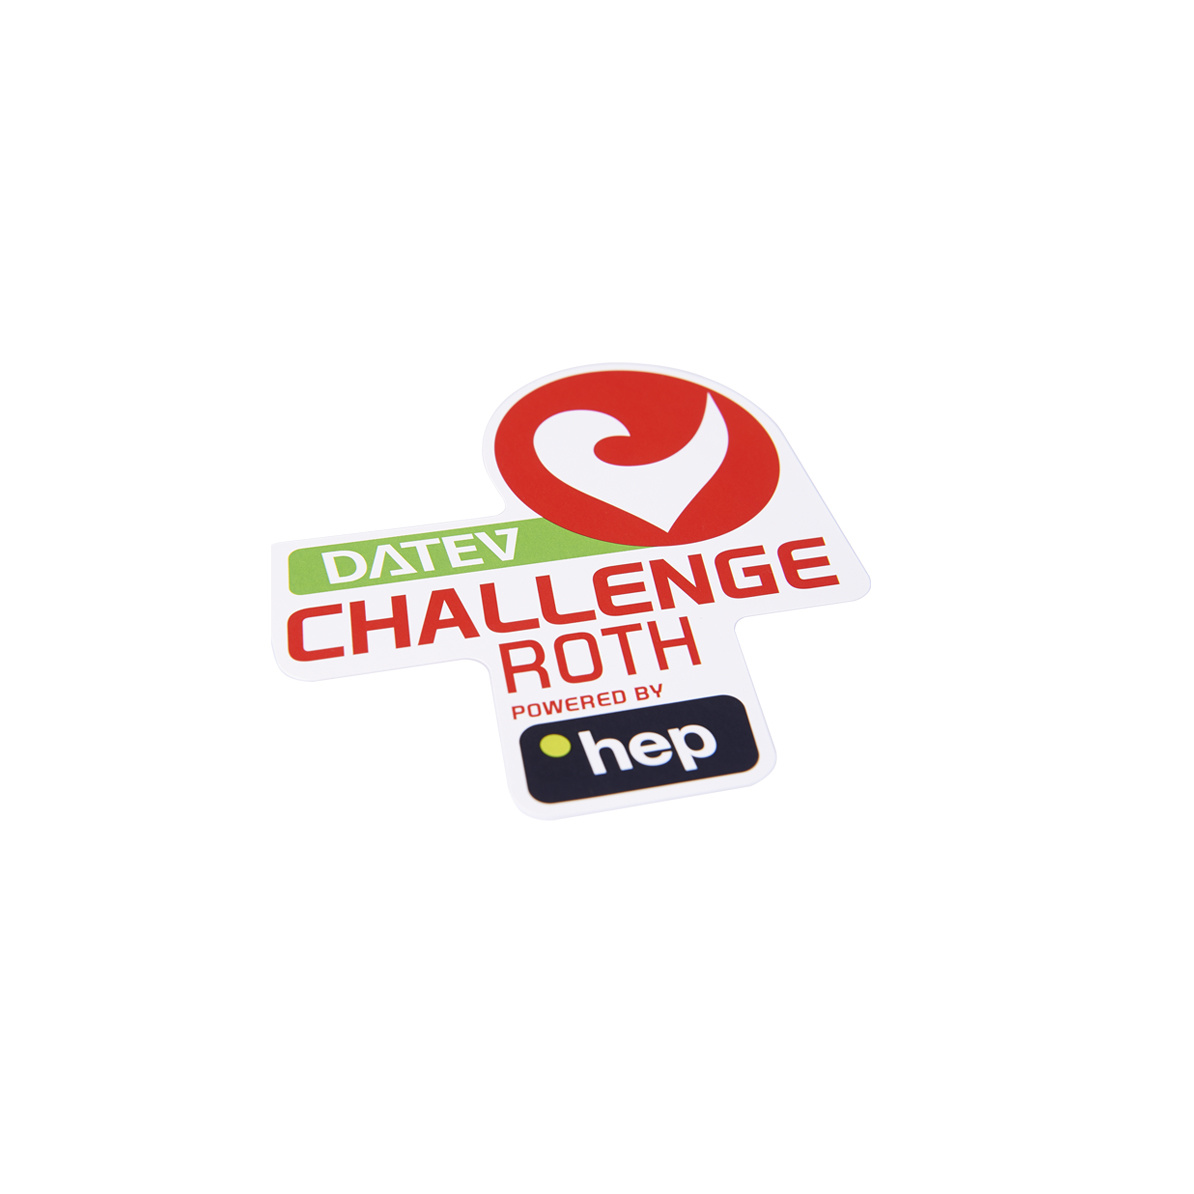 Sticker DATEV Challenge Roth powered by hep small-2